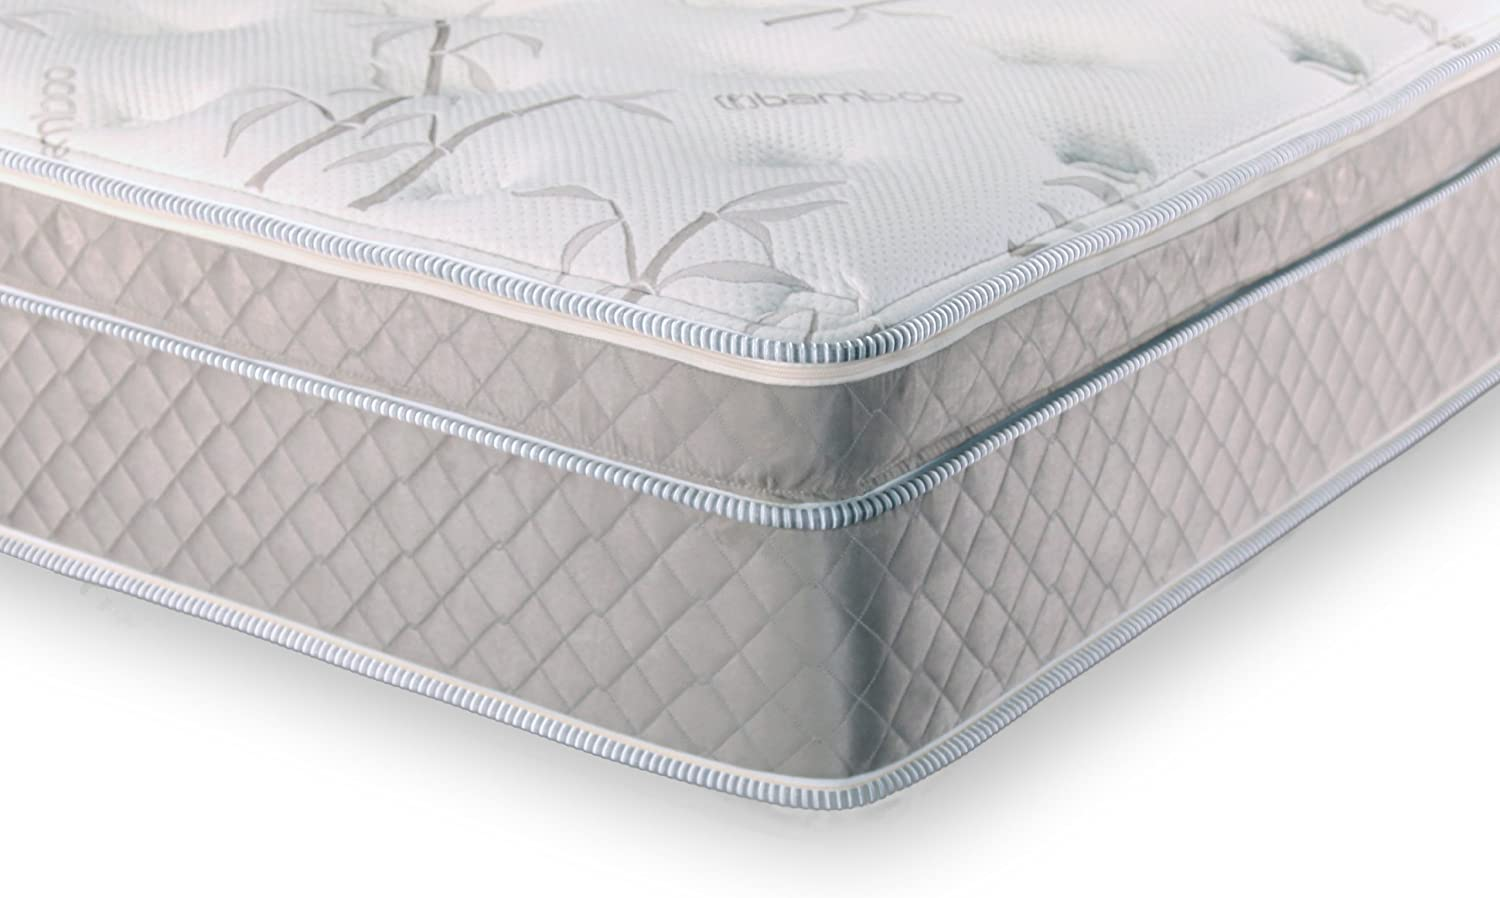 top mattress coil p proback ruskin sealy posturepedic tight firm euro pocket maderia